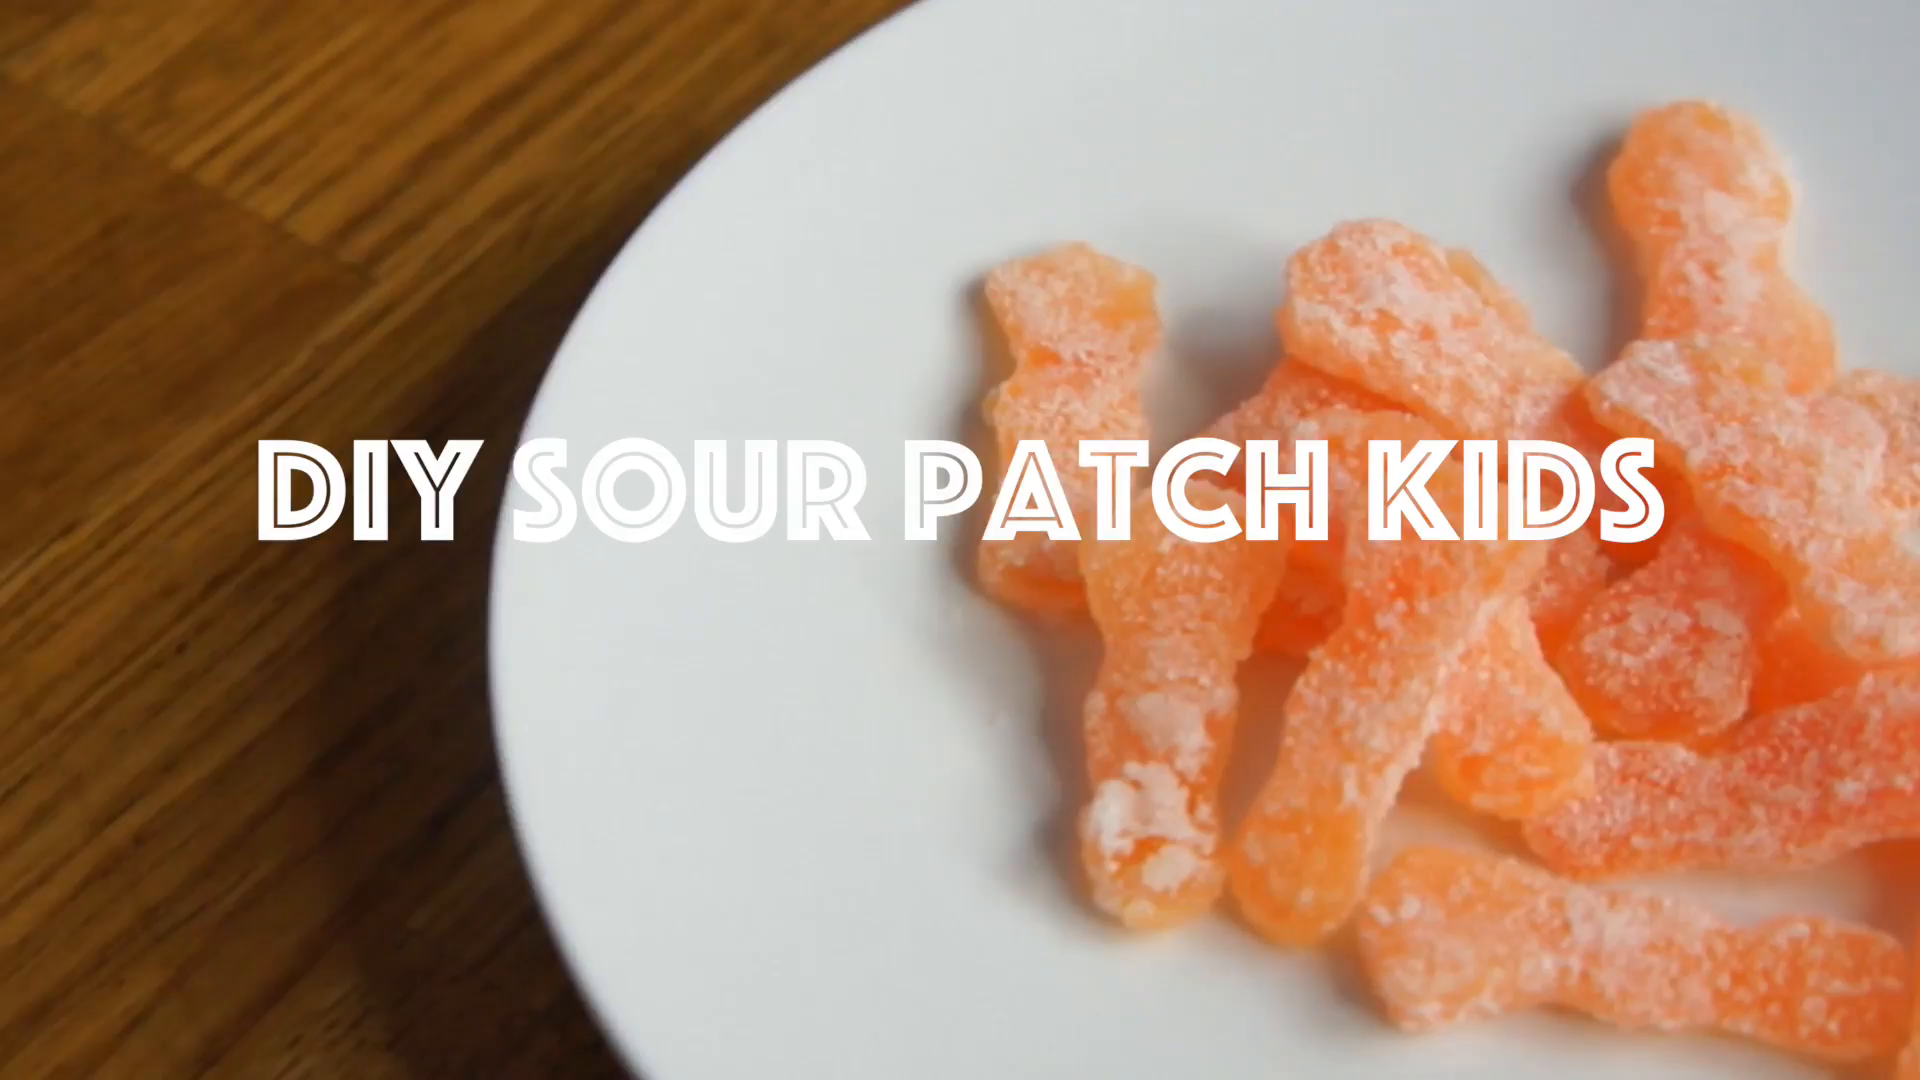 DIY Sour Patch Kids | Tastemade